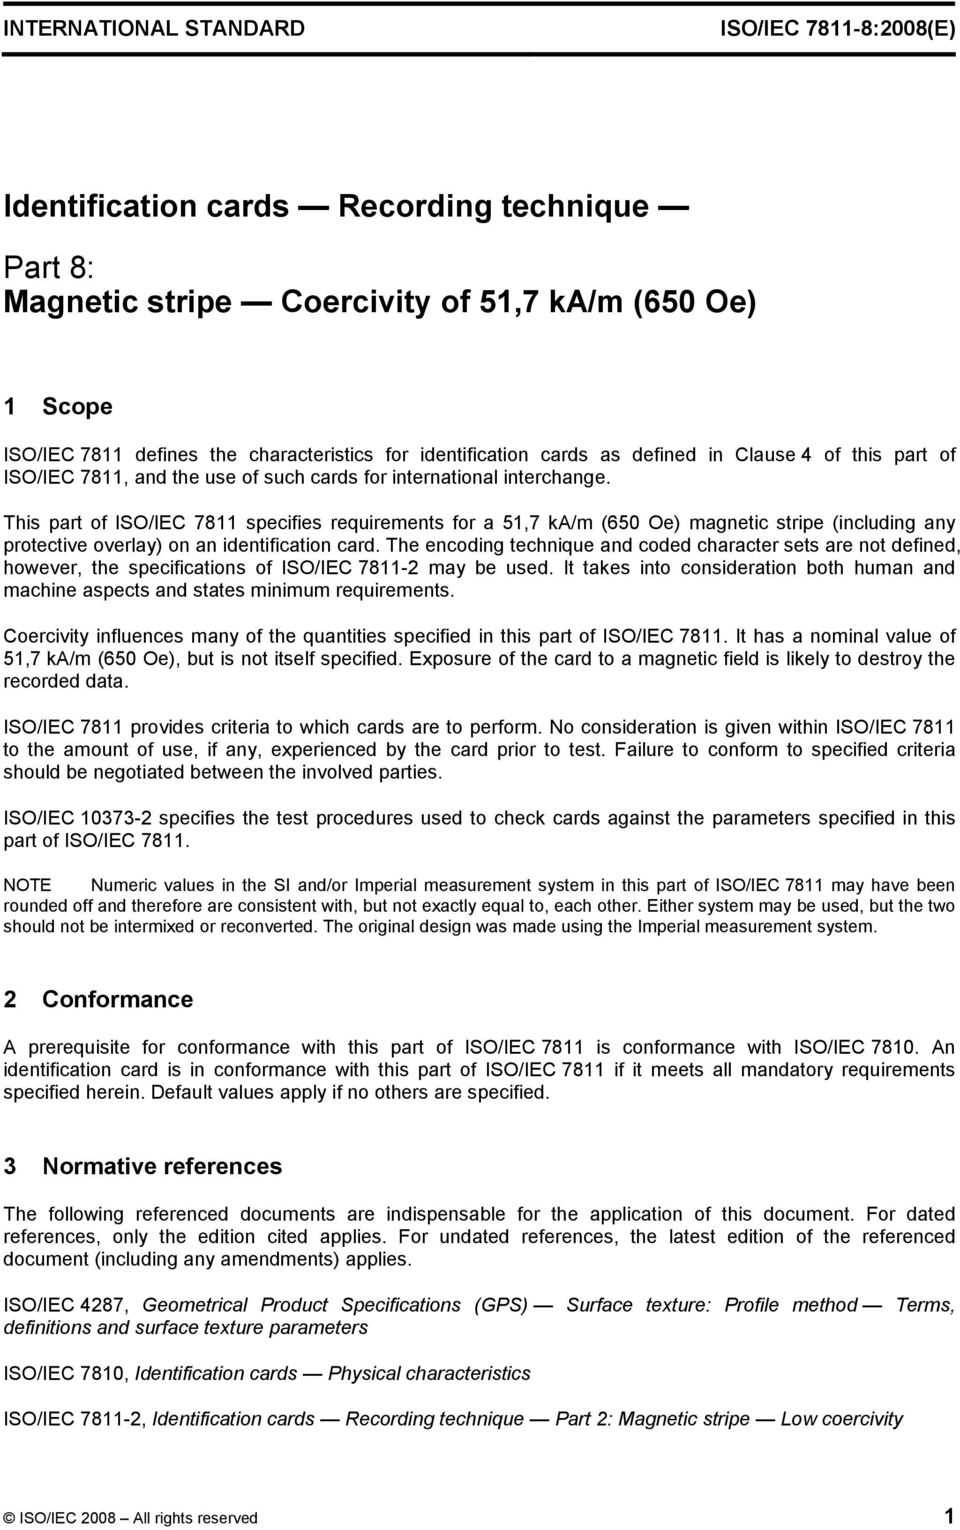 This part of ISO/IEC 7811 specifies requirements for a 51,7 ka/m (650 Oe) magnetic stripe (including any protective overlay) on an identification card.